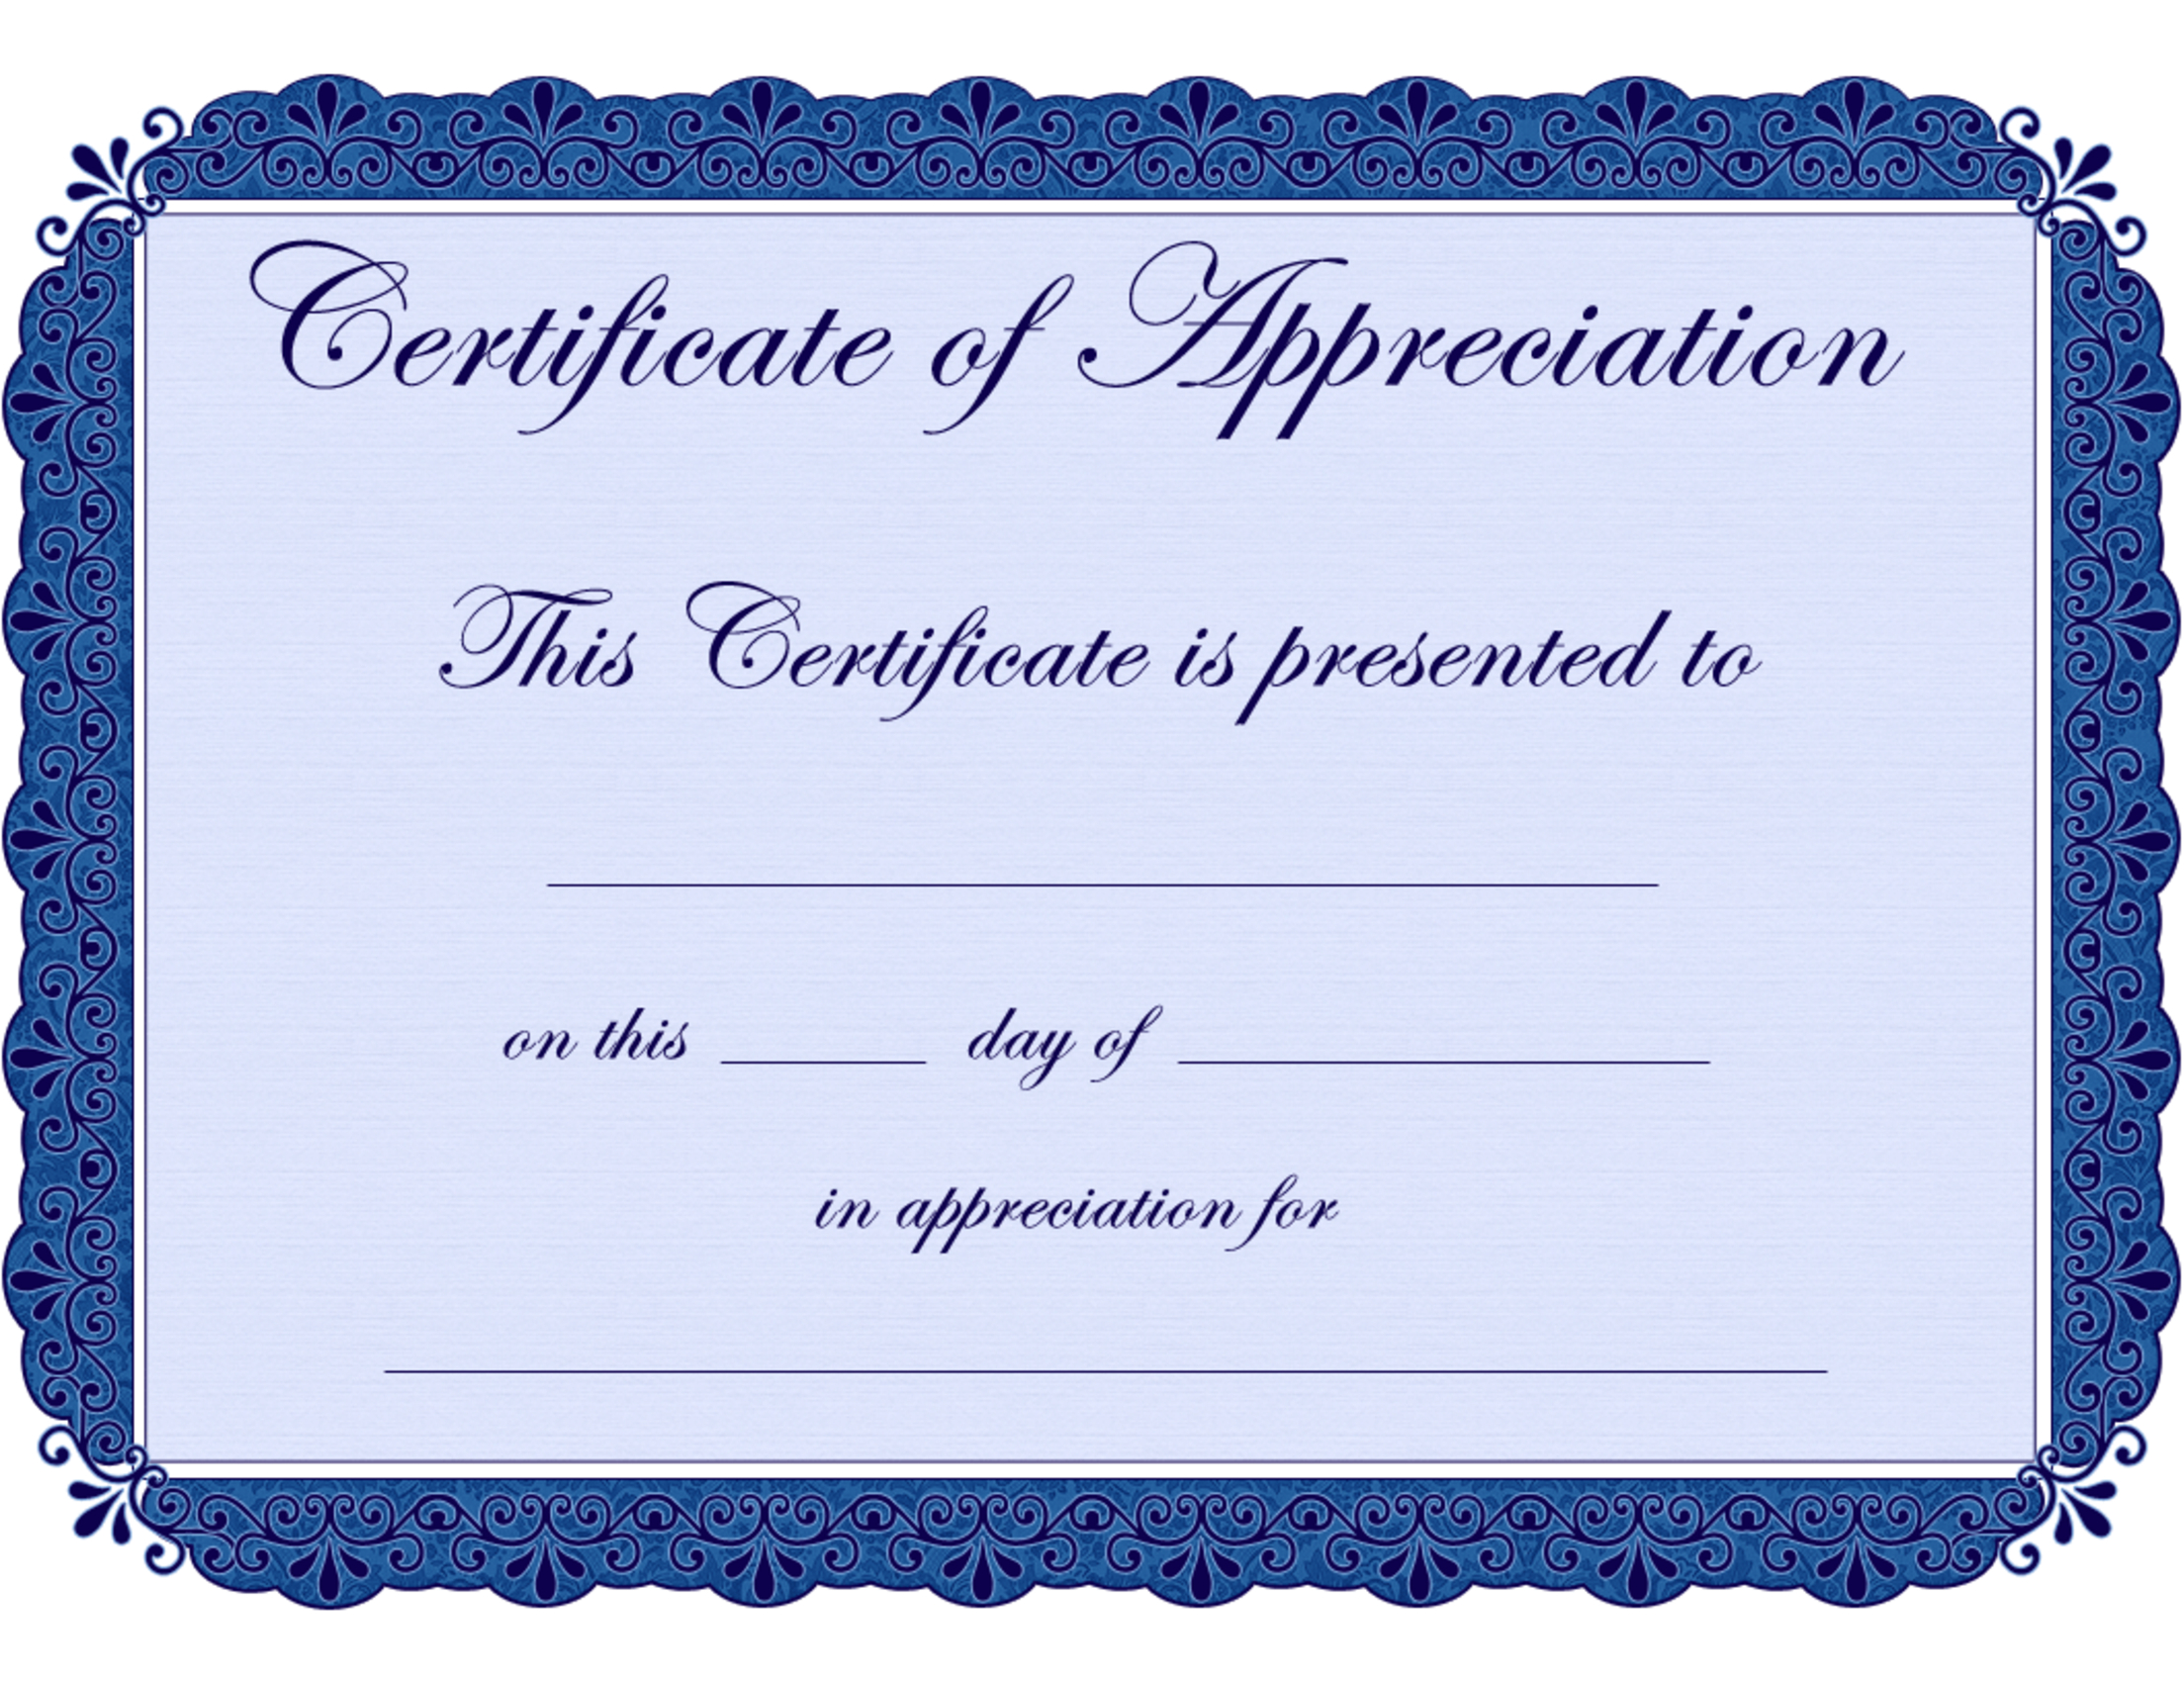 Free Printable Certificates Certificate Of Appreciation Certificate - Free Printable Certificates